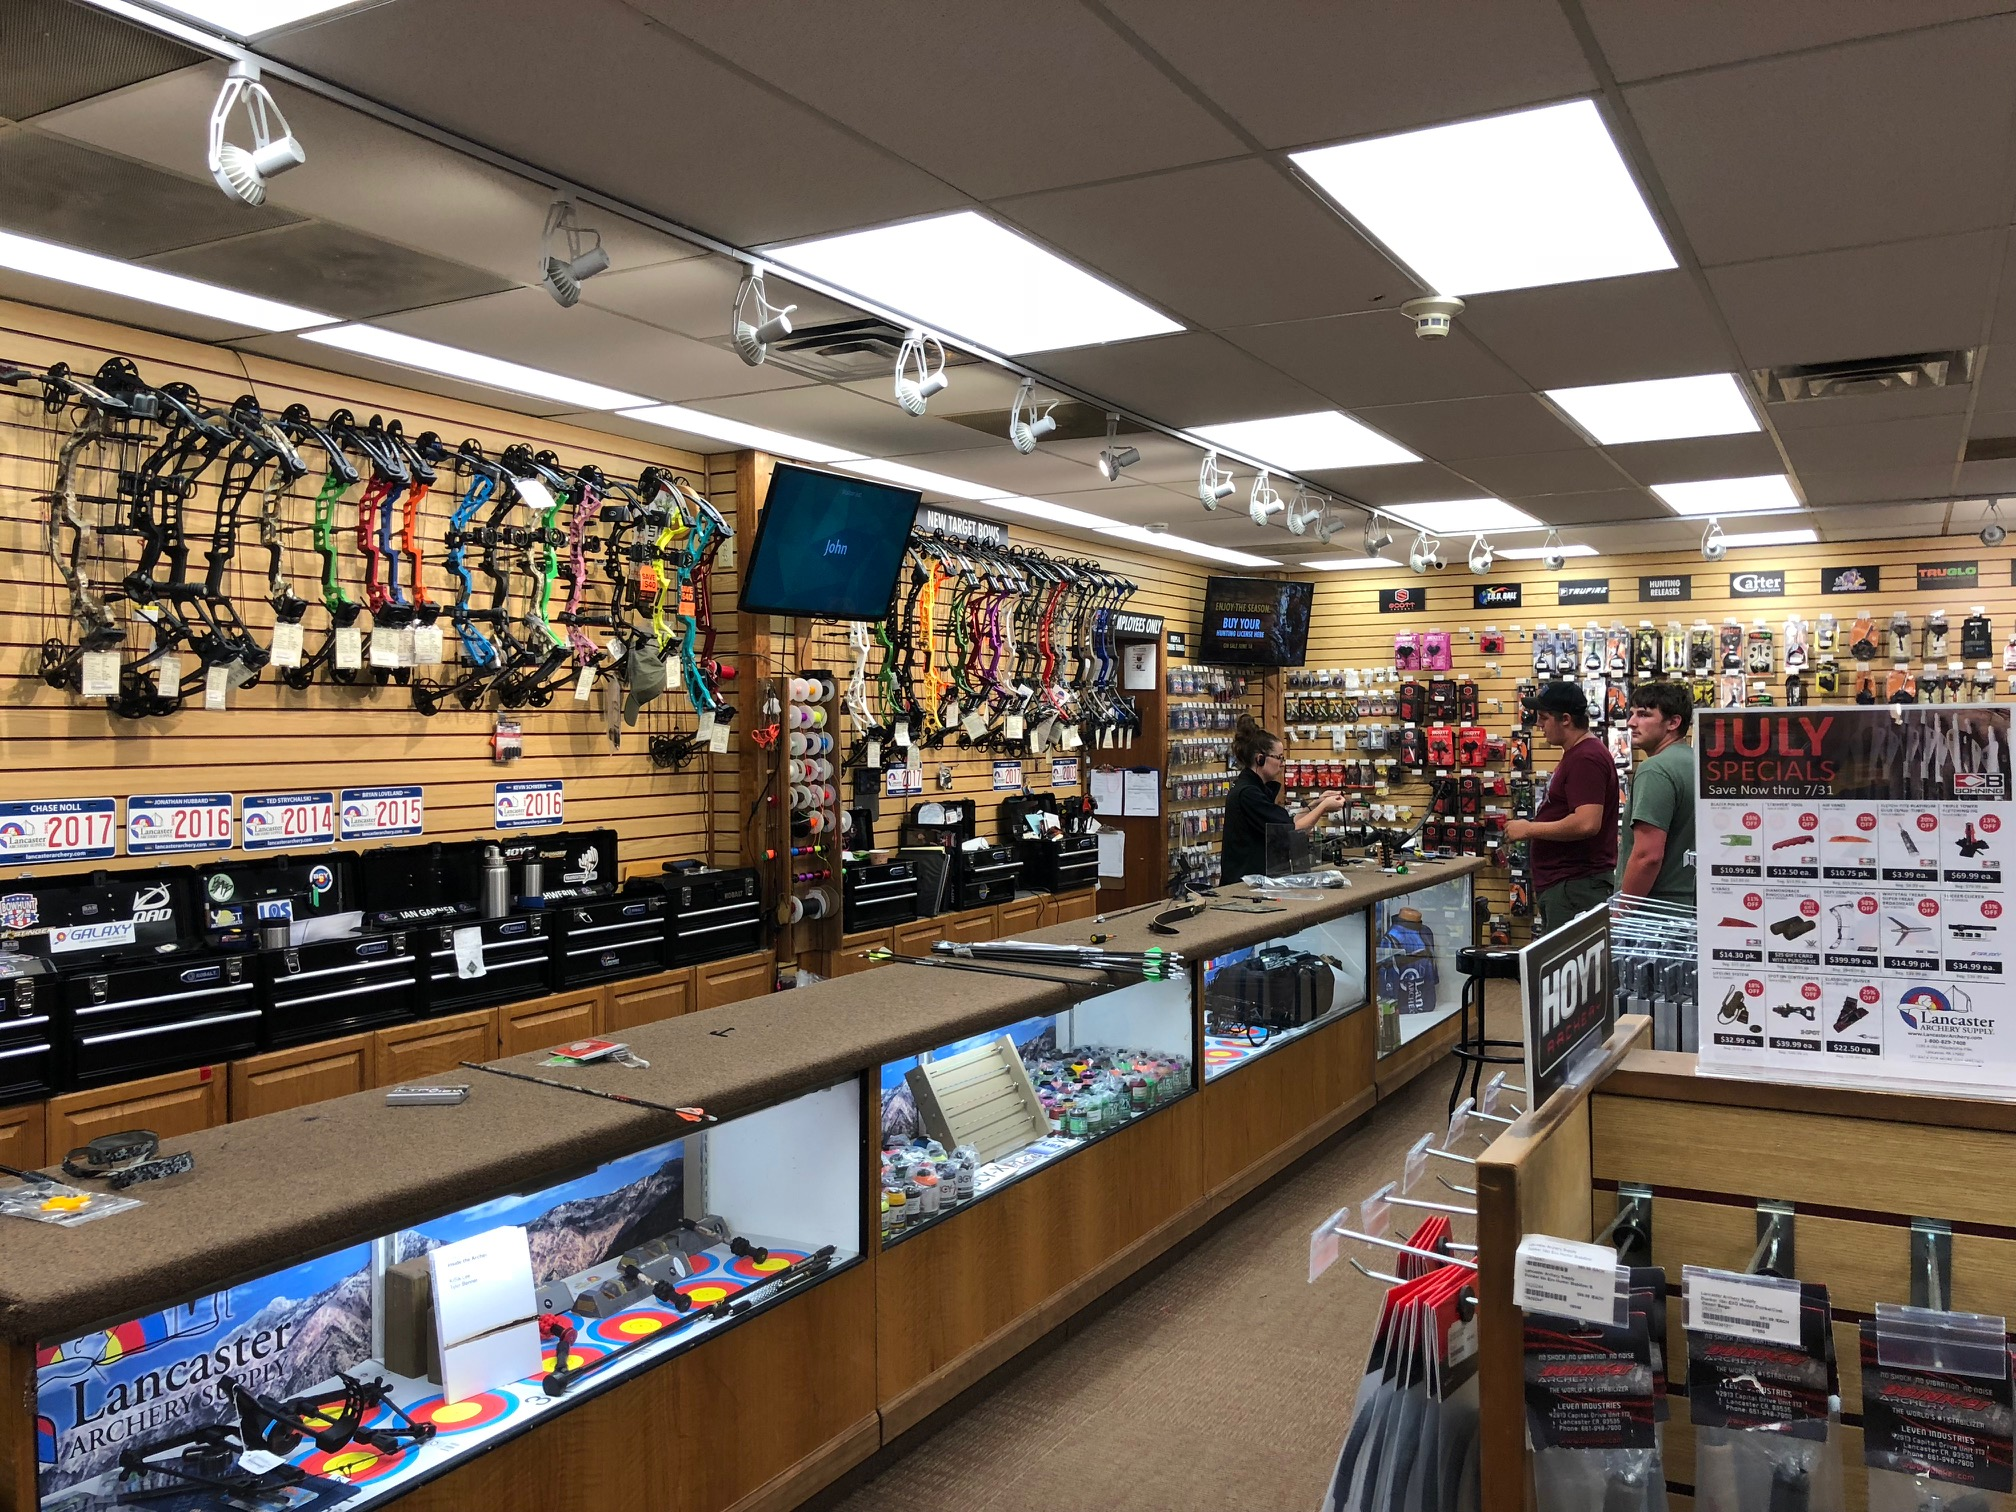 Qminder in Lancaster Archery Supply, USA